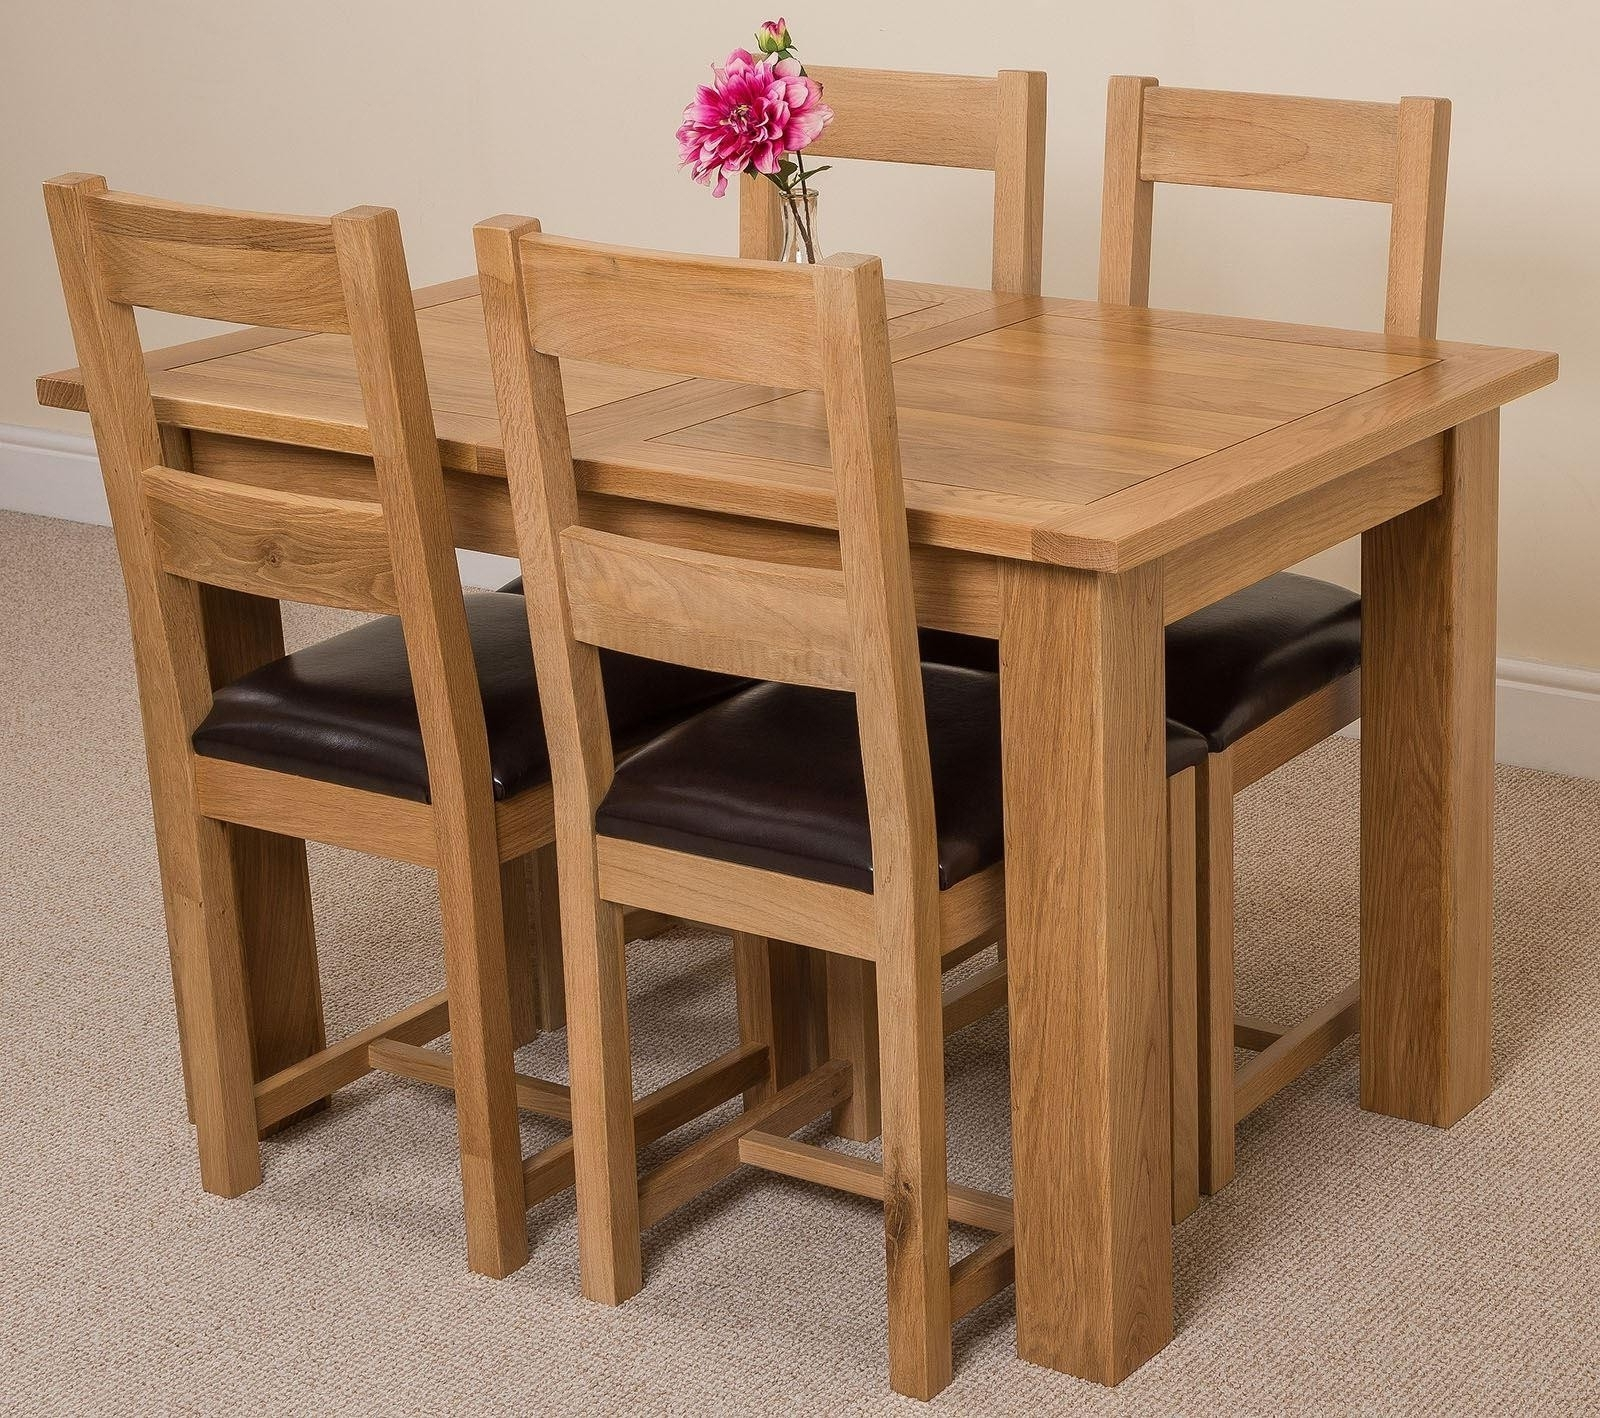 Oak Furniture King With Best And Newest Oak Dining Tables And 4 Chairs (View 16 of 25)